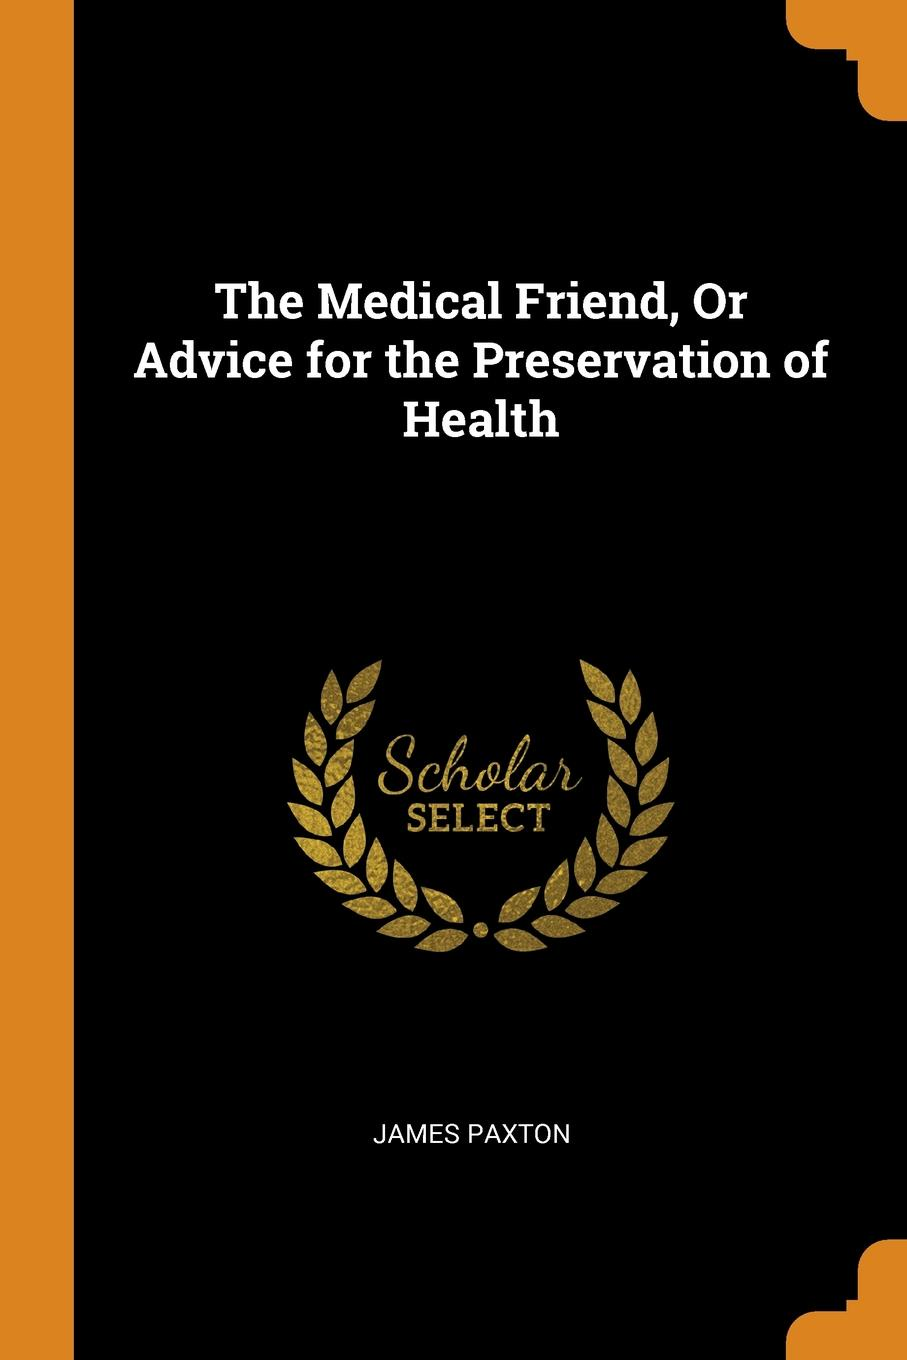 The Medical Friend, Or Advice for the Preservation of Health